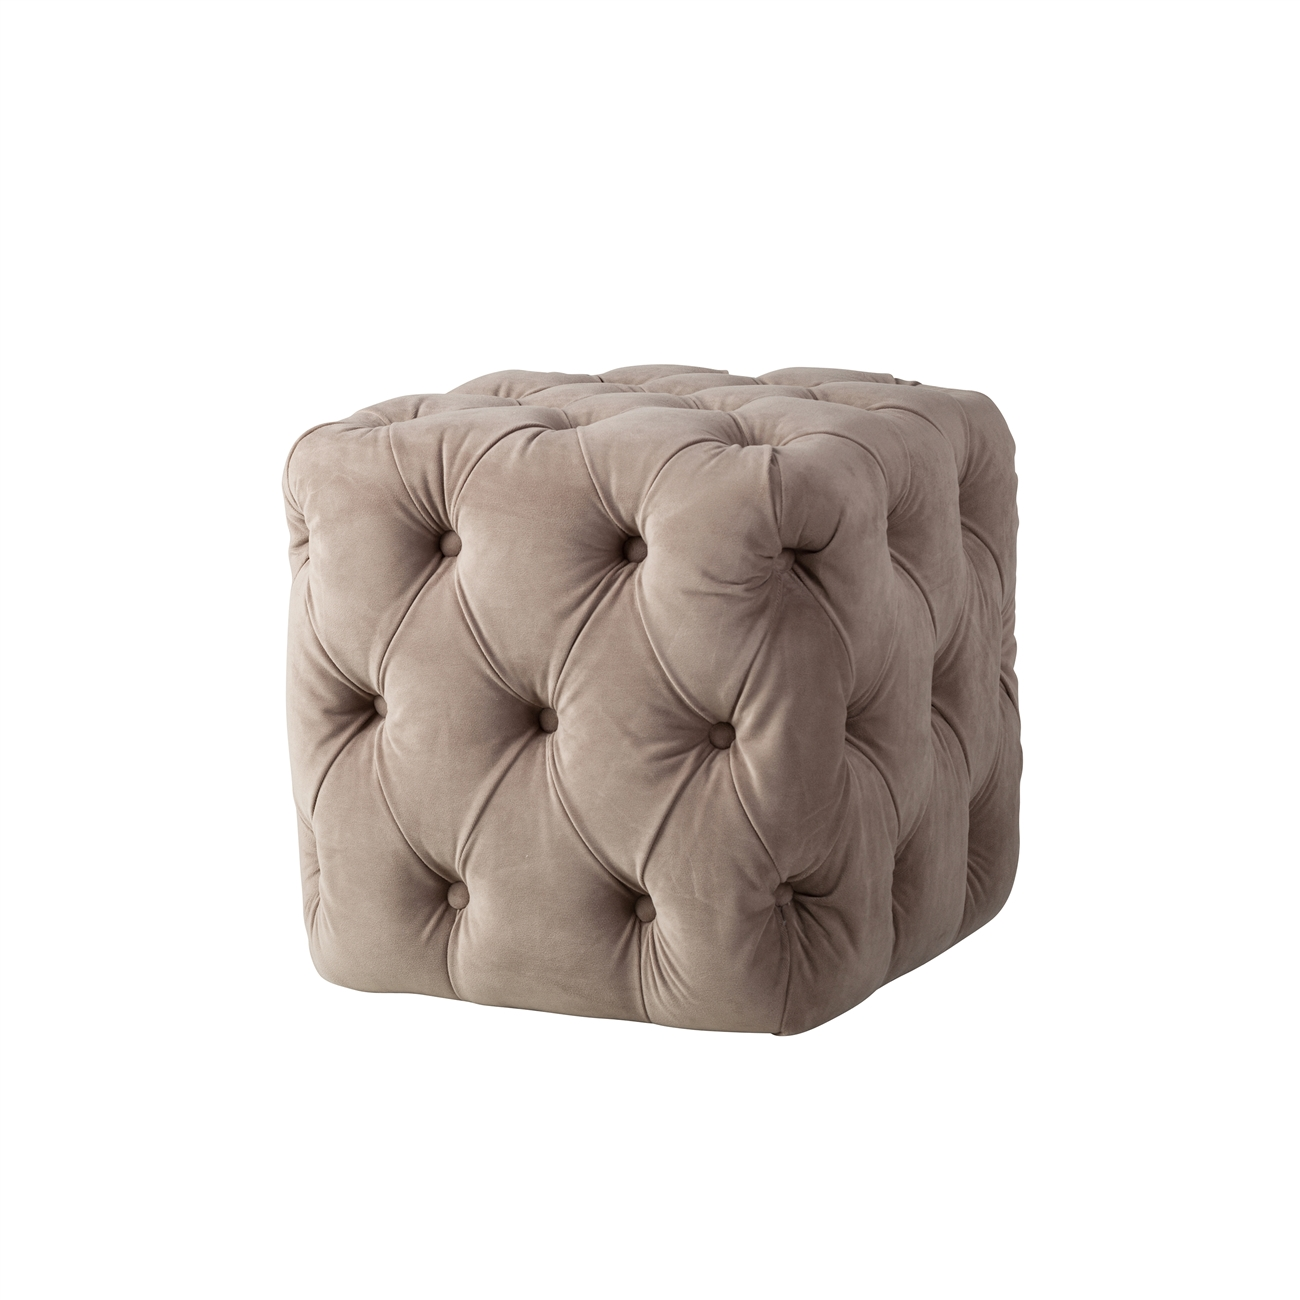 Wondrous Grace Tufted Ottoman In Taupe Dailytribune Chair Design For Home Dailytribuneorg